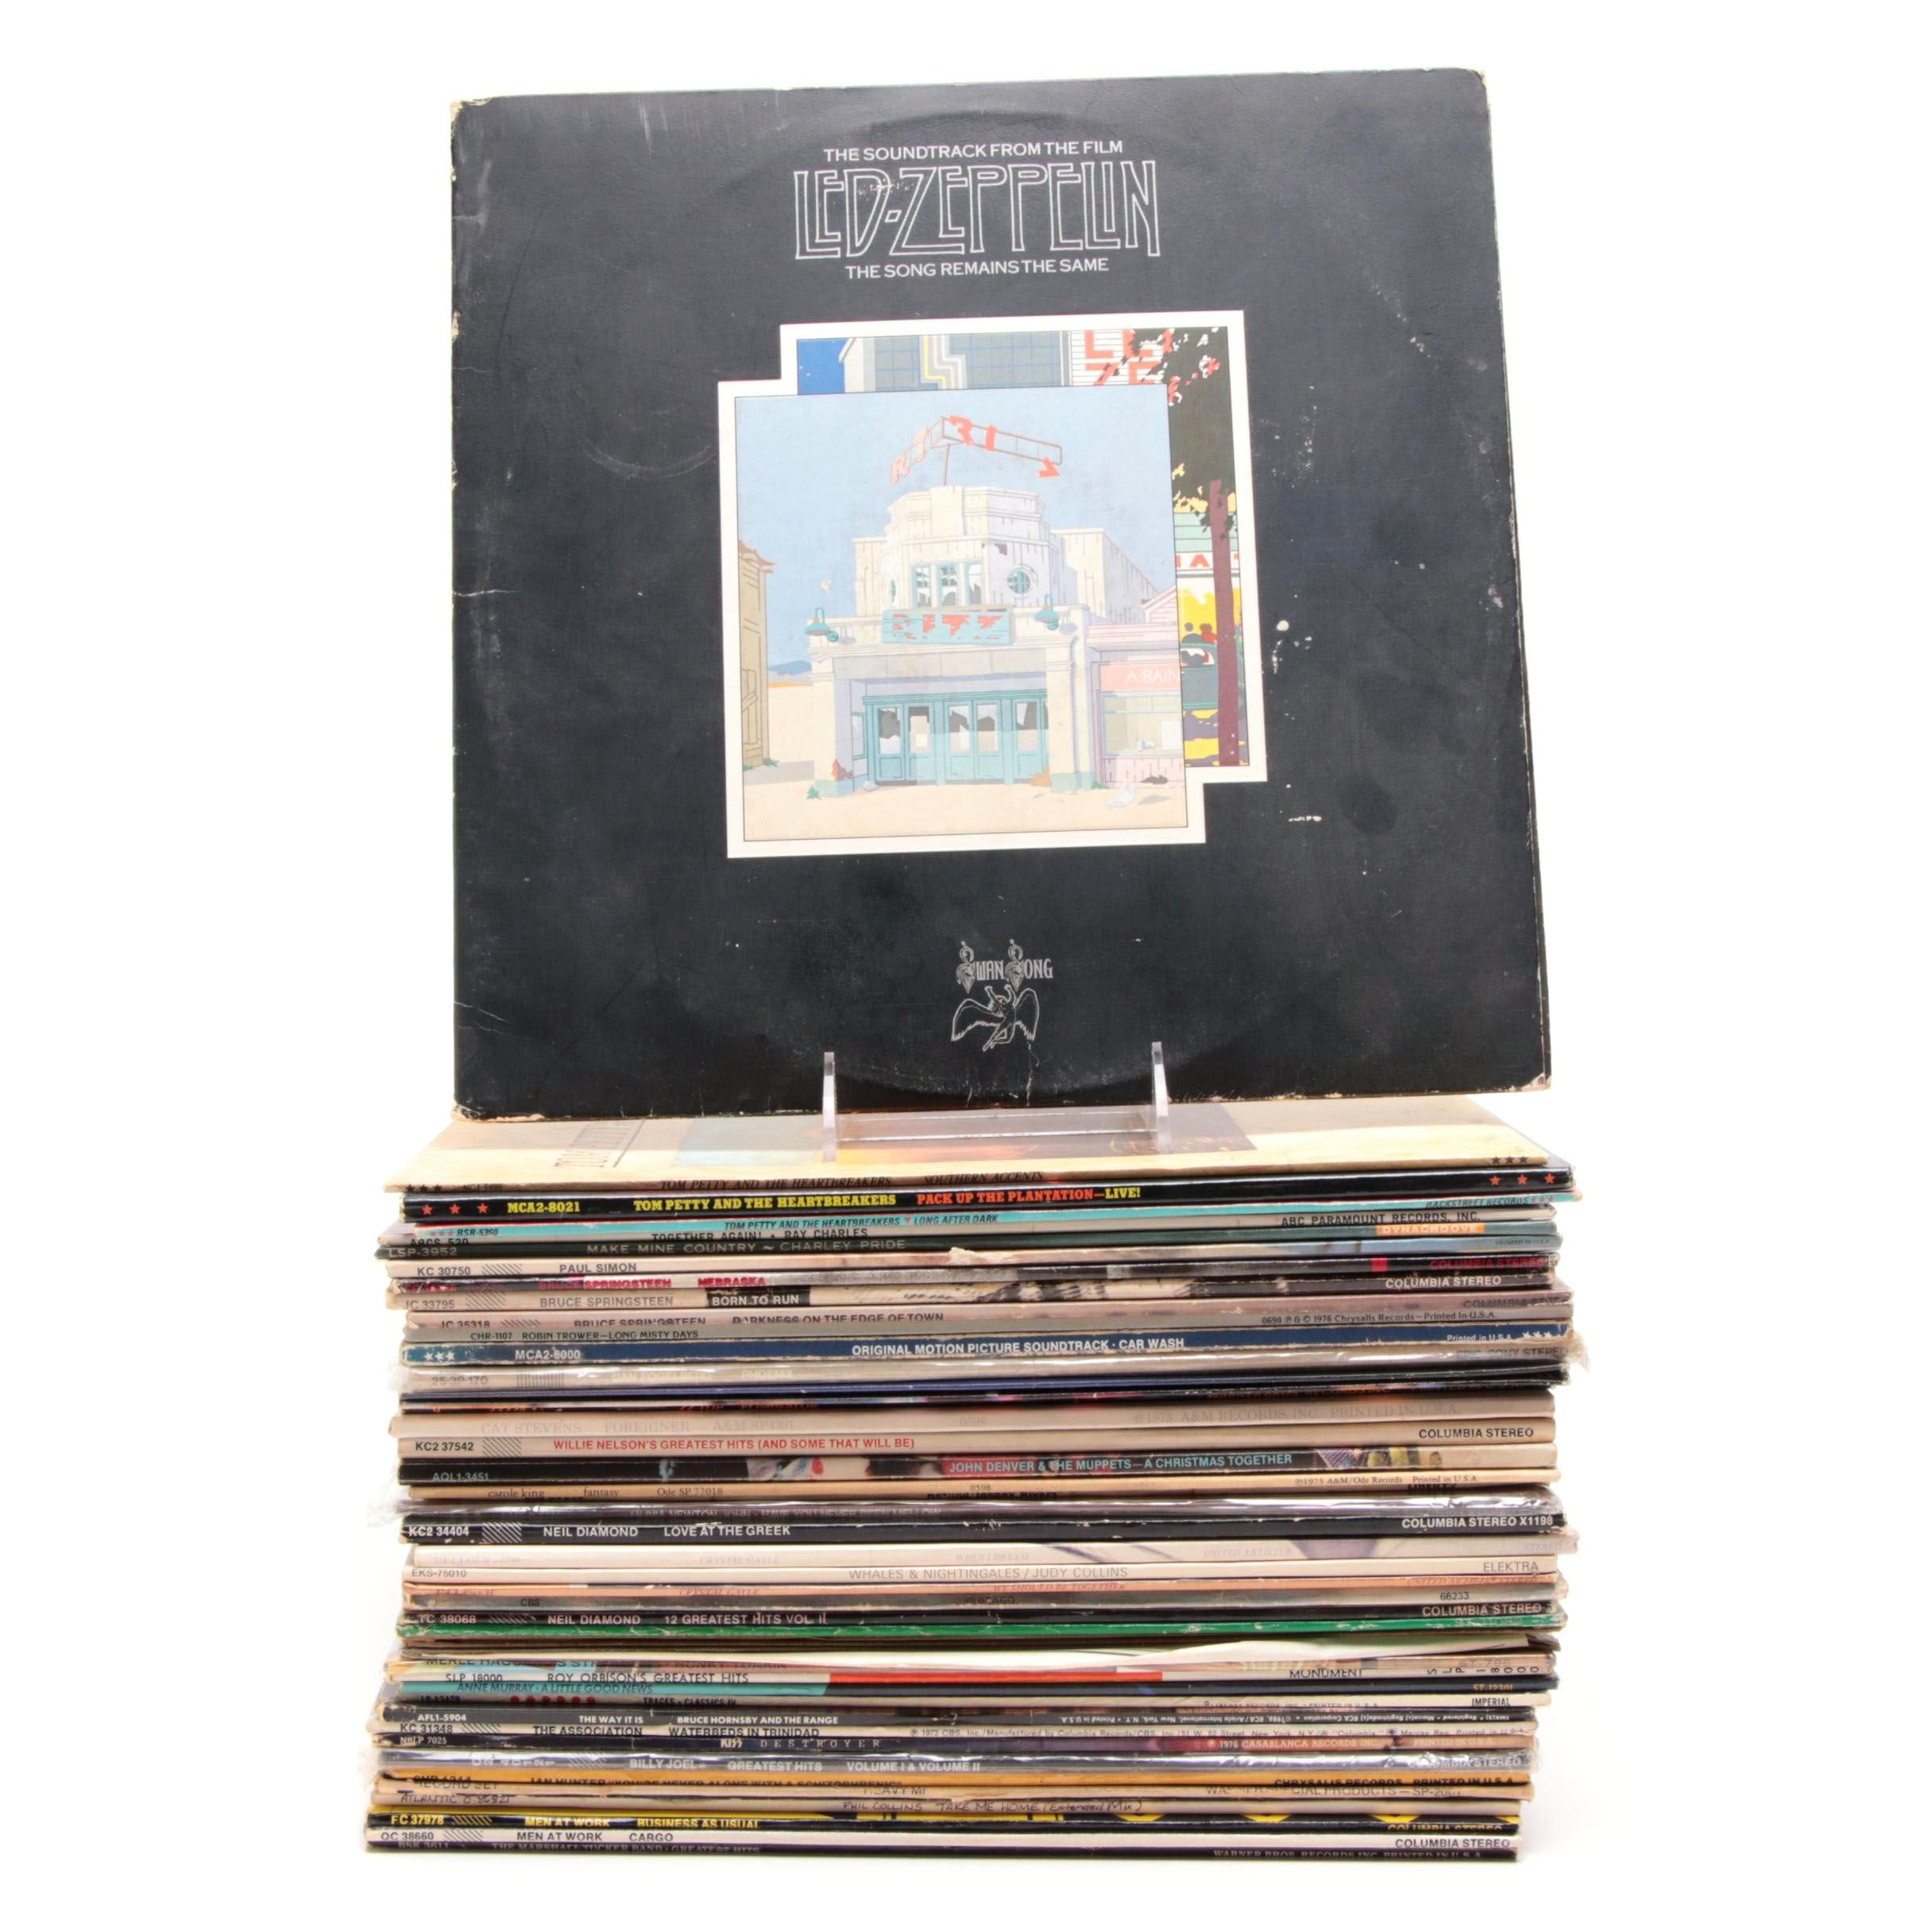 Records Including Roy Orbison, Ray Charles, Led Zeppelin and More